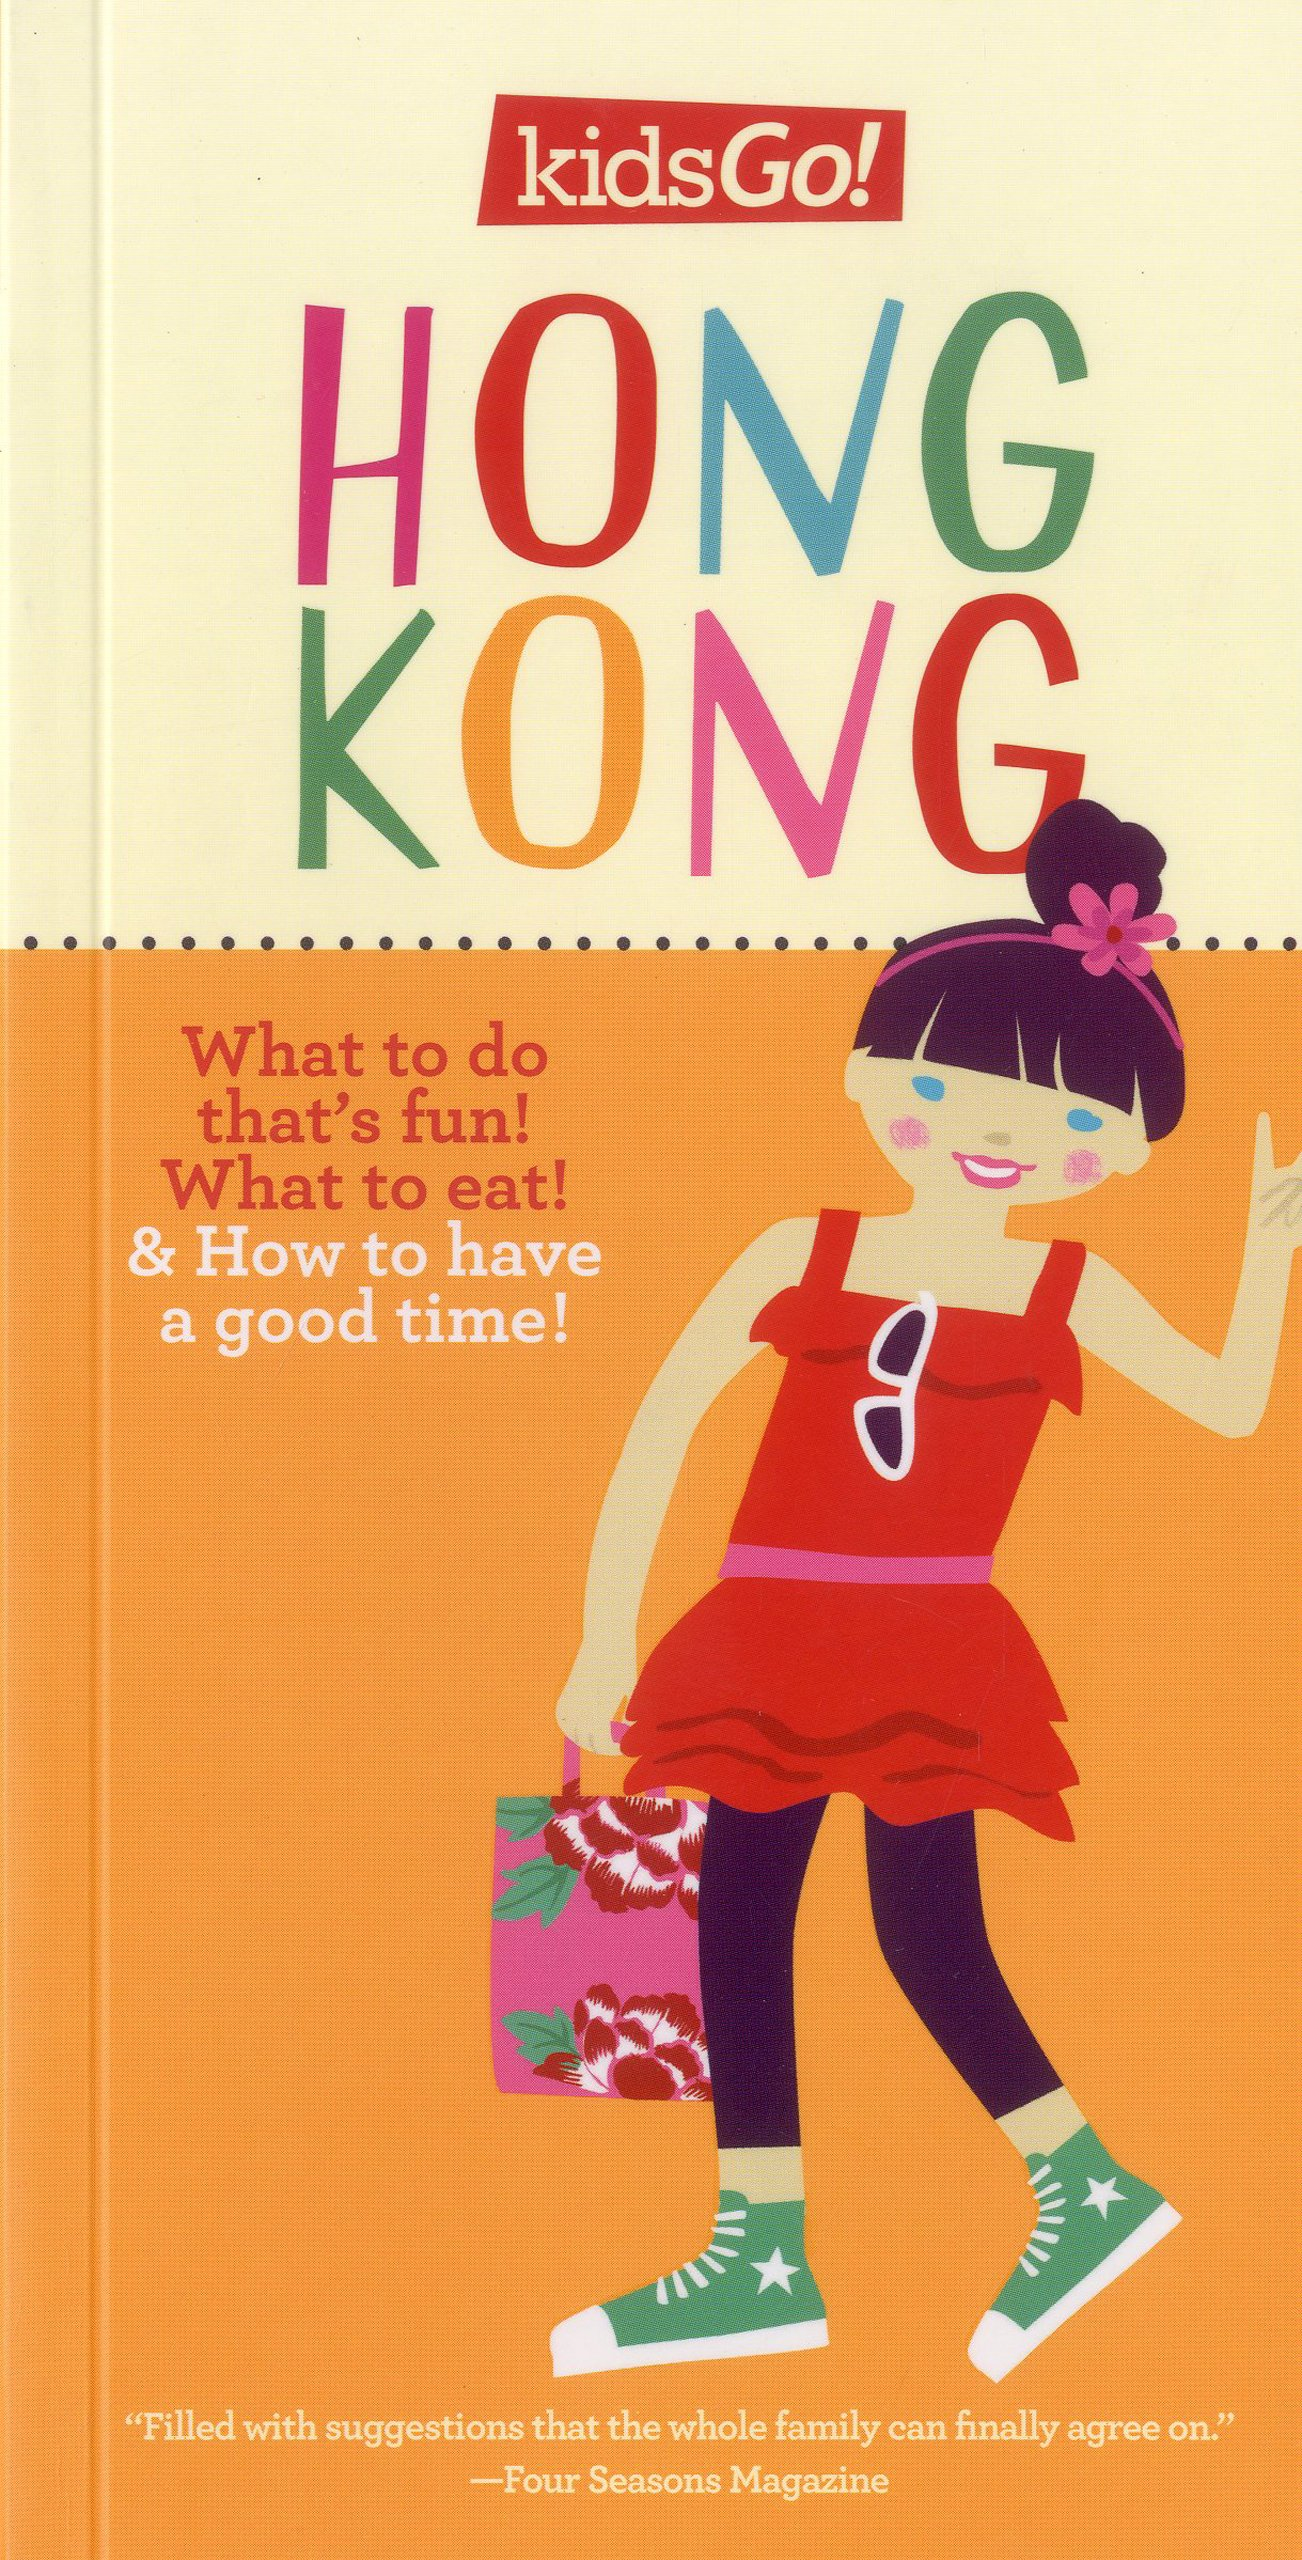 KidsGo! Hong Kong: Tell Your Parents Where to Go (KidsGo! Guides) pdf epub